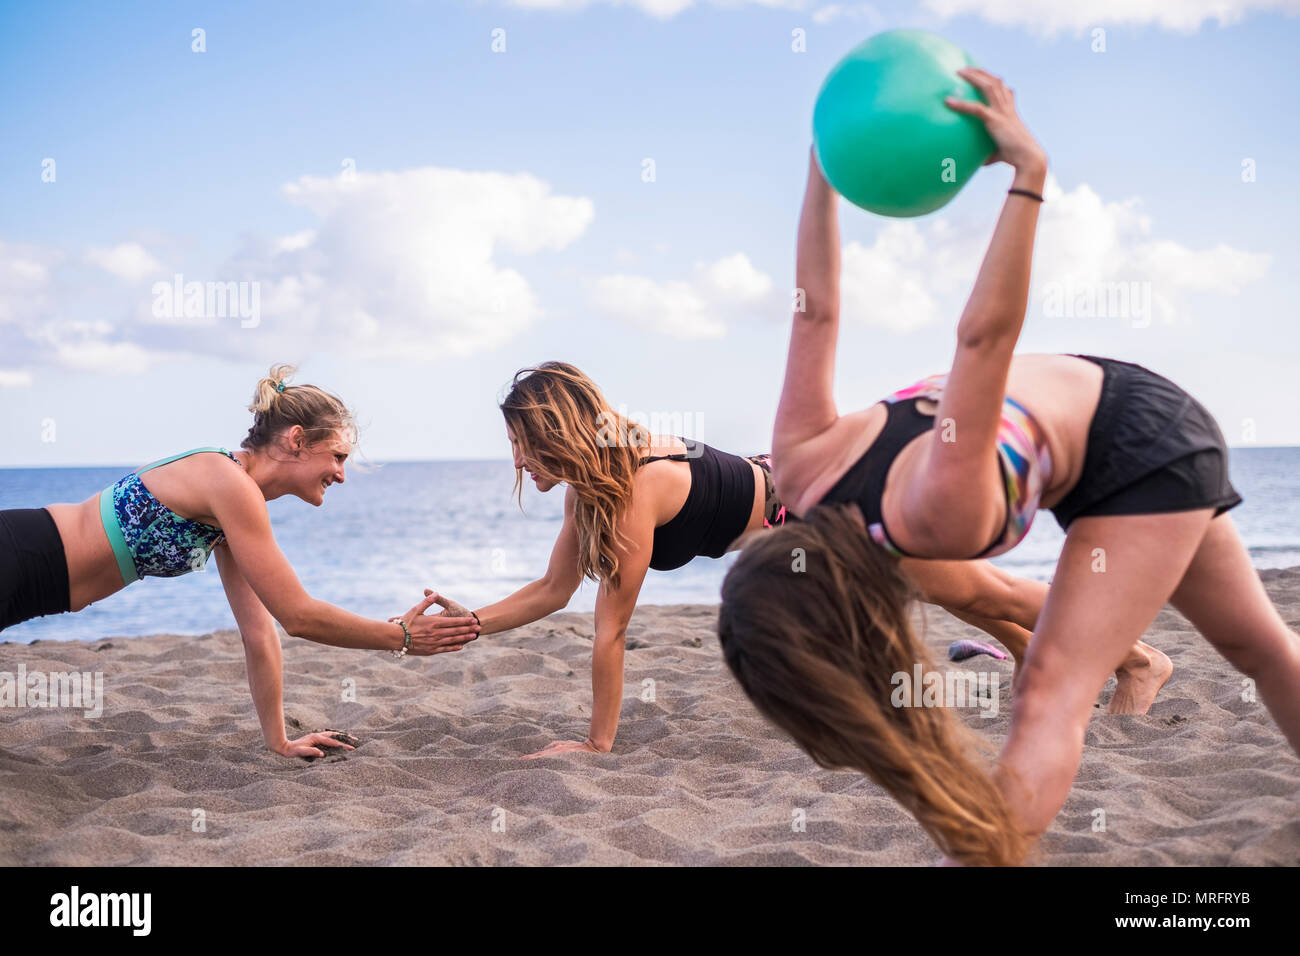 group of females people caucasian three beautiful women doing yoga and fitness on the sand at the beach near the ocean. freedom concept for leisure ac - Stock Image